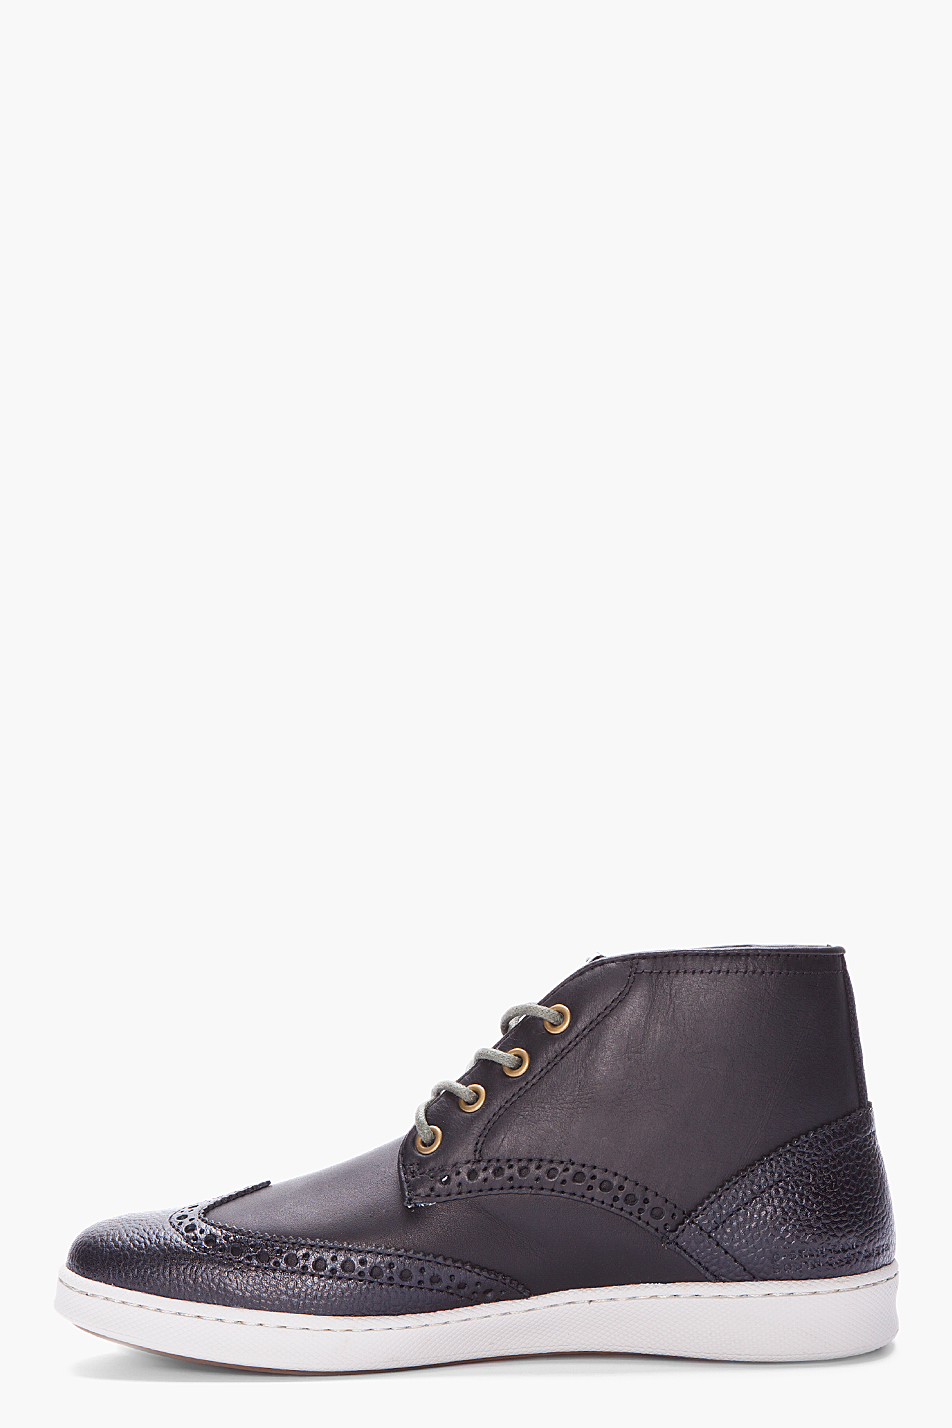 Lyst G Star Raw Black Precinct Eastchester Shoes In